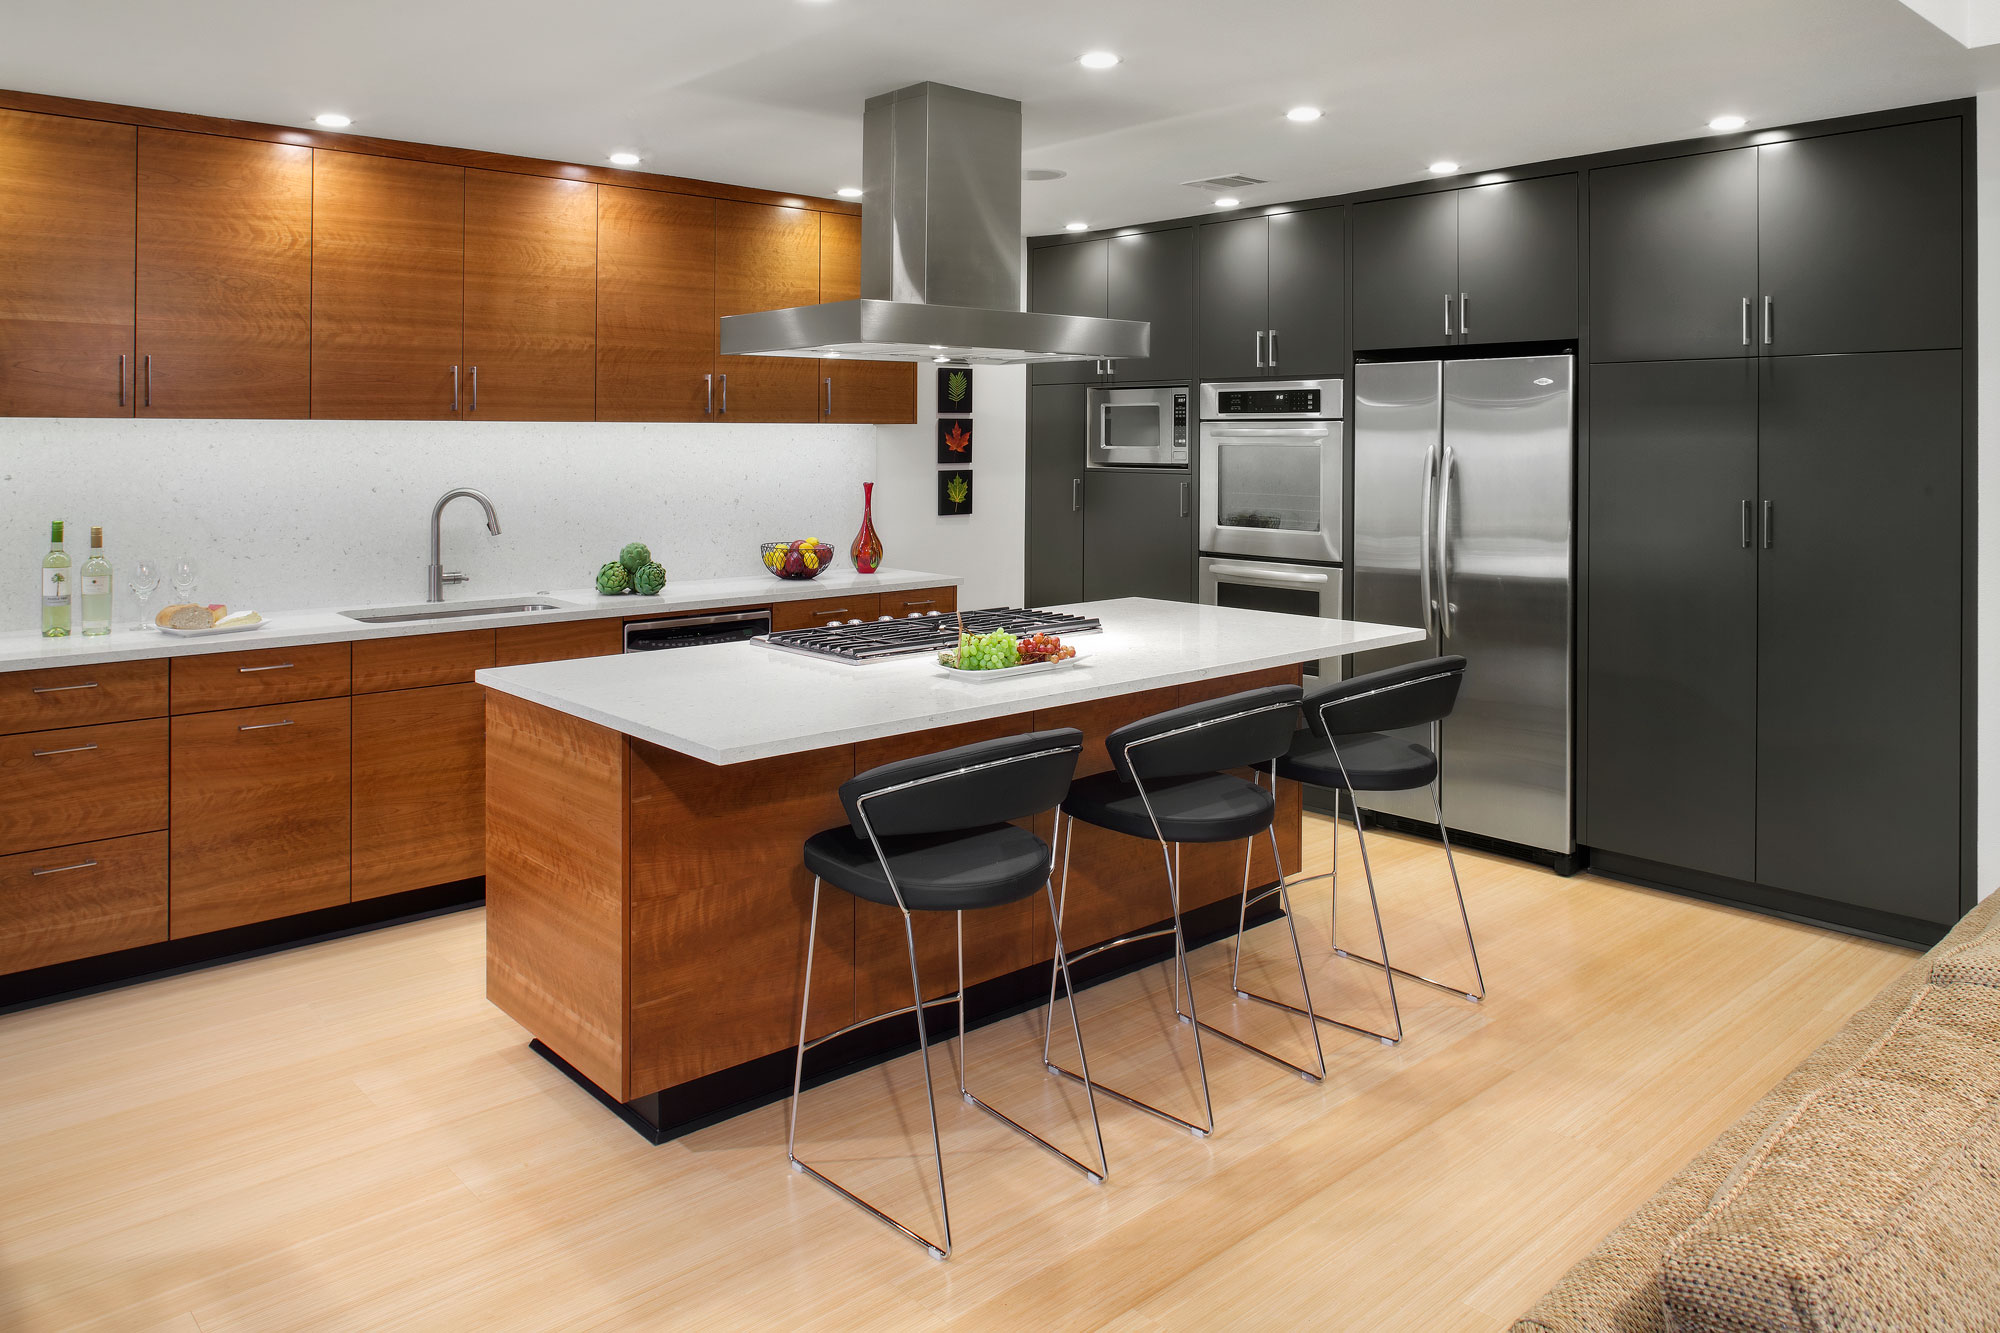 Burst Pipes Lead To An Inspired Whole House Remodel Remodeling Awards De